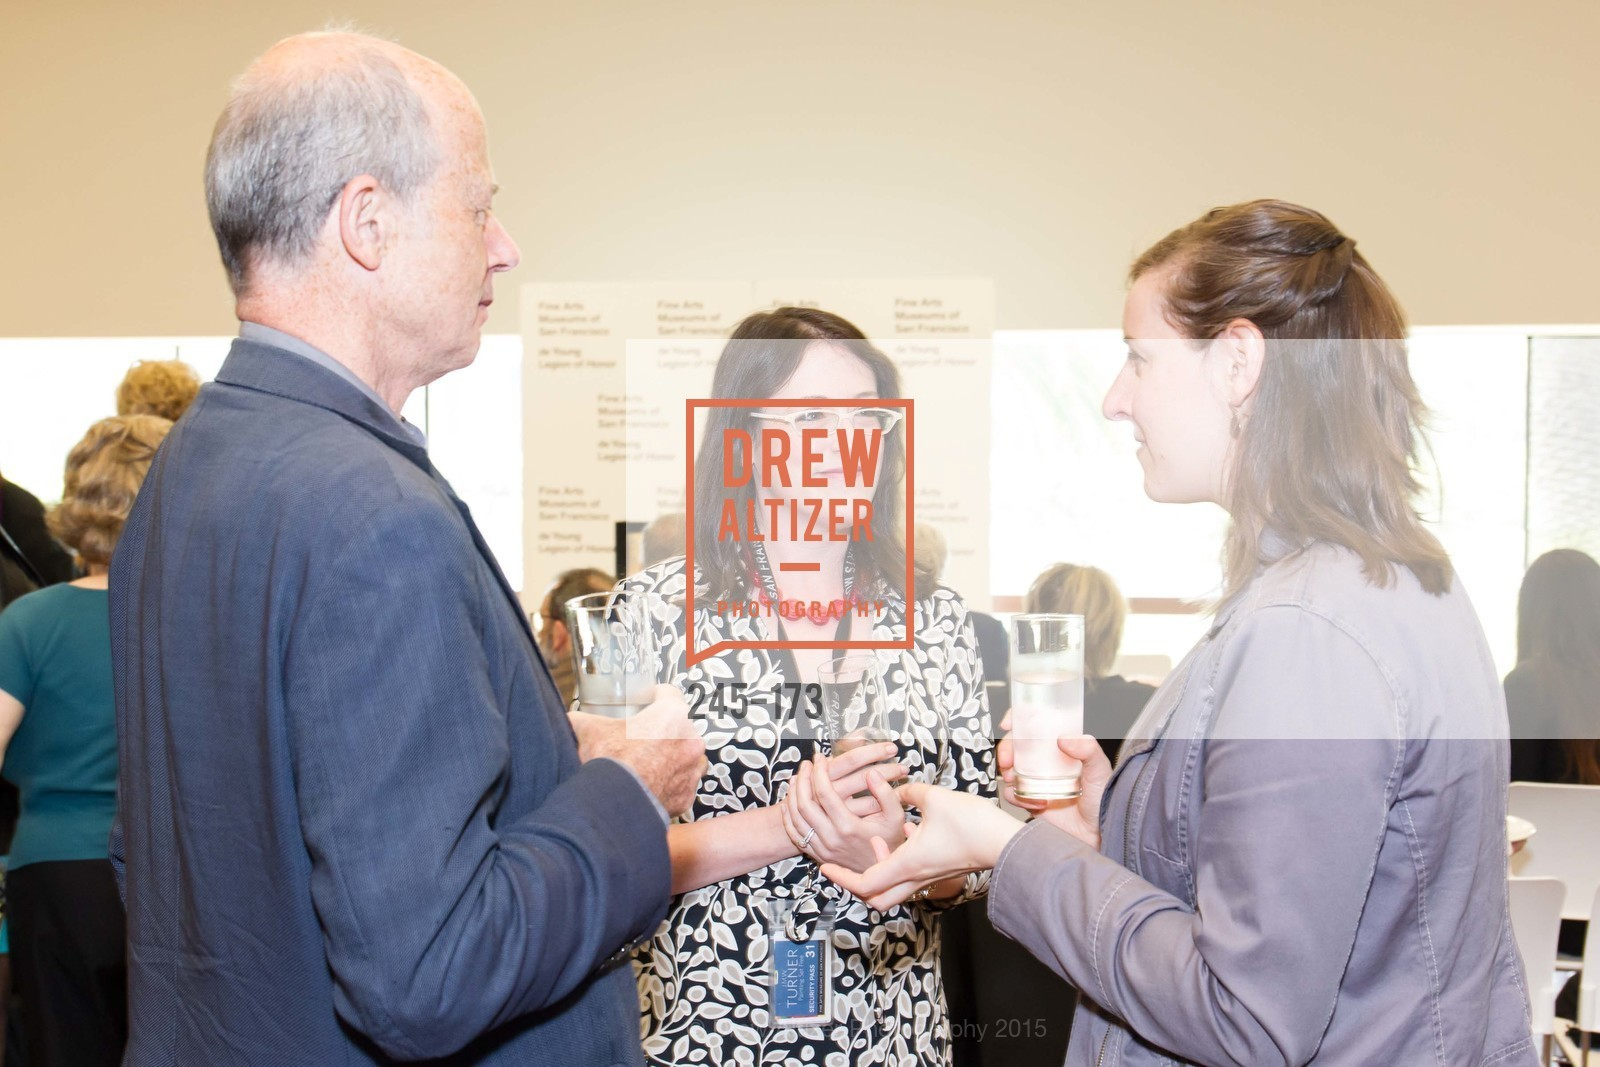 Extras, J. M. W. Turner: Painting Set Free Press Preview, June 18th, 2015, Photo,Drew Altizer, Drew Altizer Photography, full-service event agency, private events, San Francisco photographer, photographer California